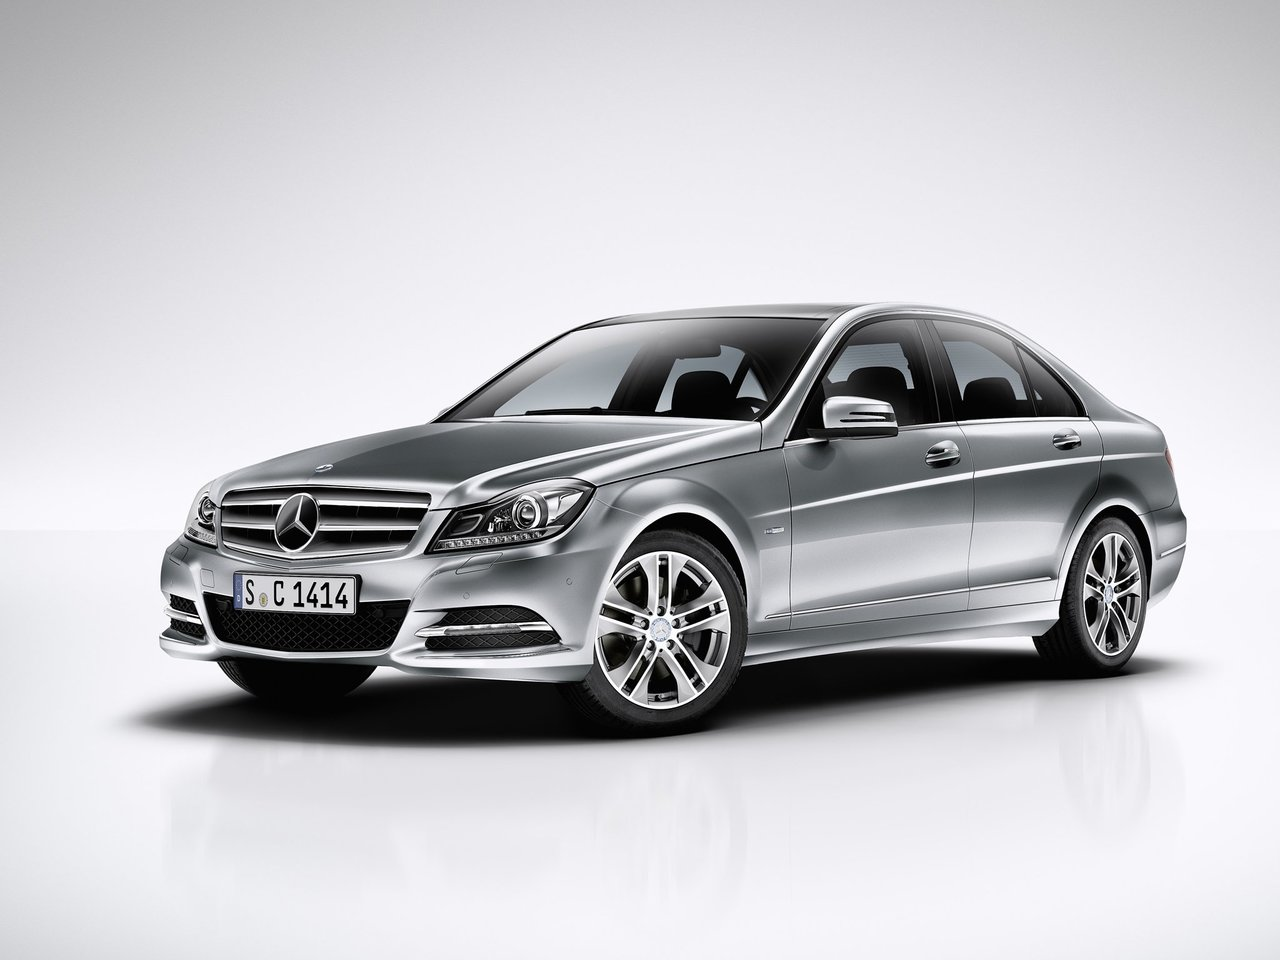 Mercedes-Benz C-klasse III (W204) Restyling on Chedot